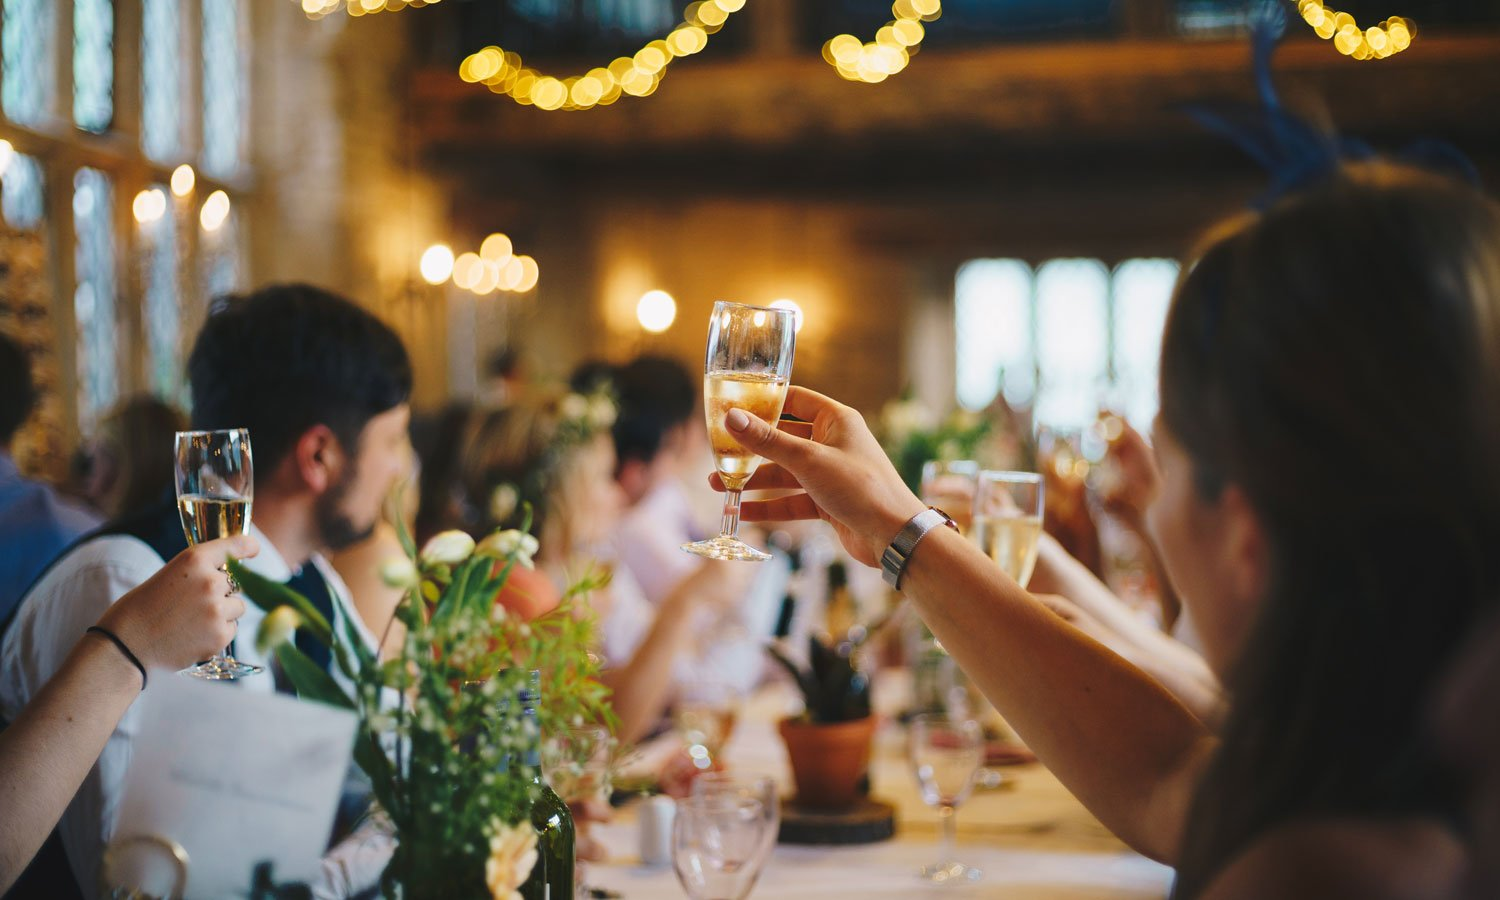 A long table of wedding guests with a glass of champagne raised to toast the couple